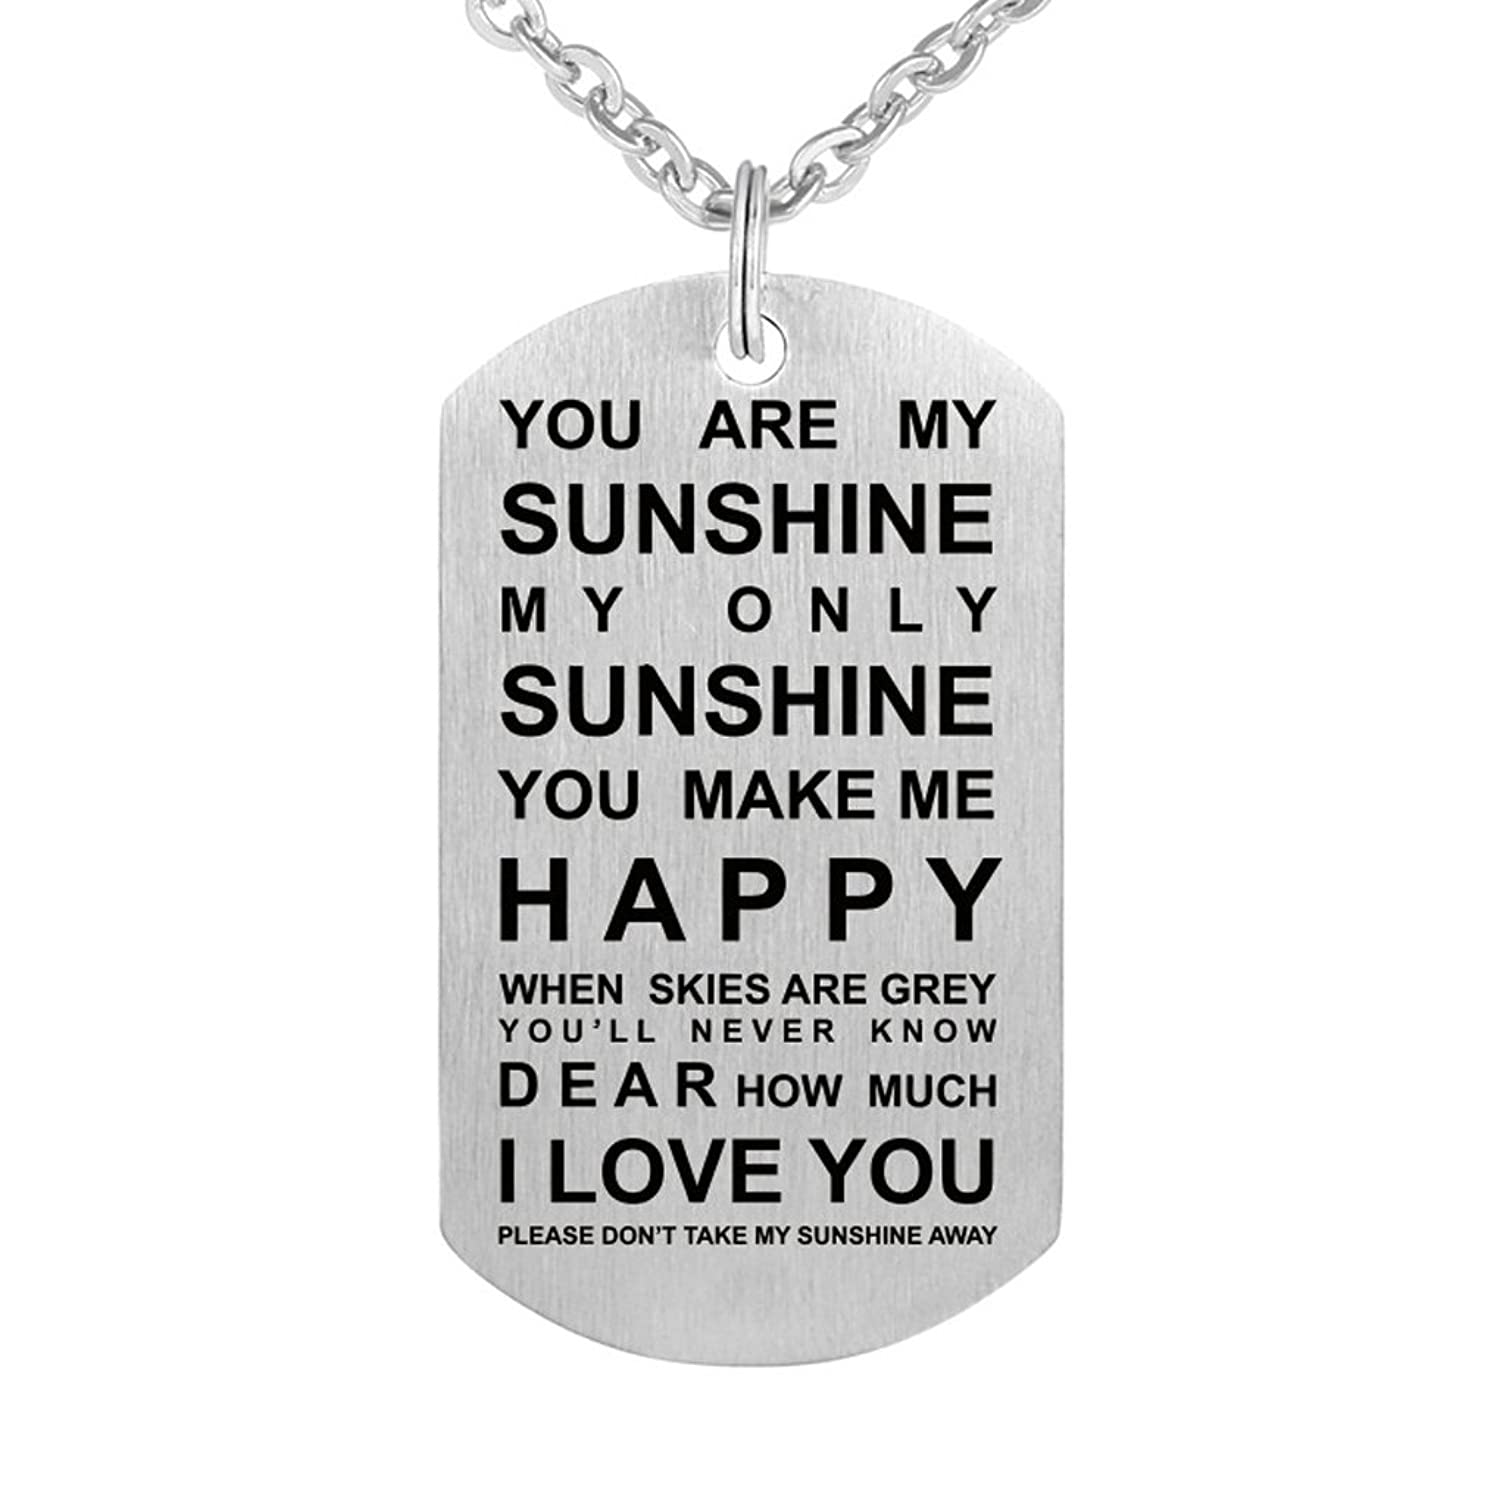 Inspirational Love Gift To My Love You Are My Sunshine Stainless Steel Dog Tag Pendant Necklace Keychain